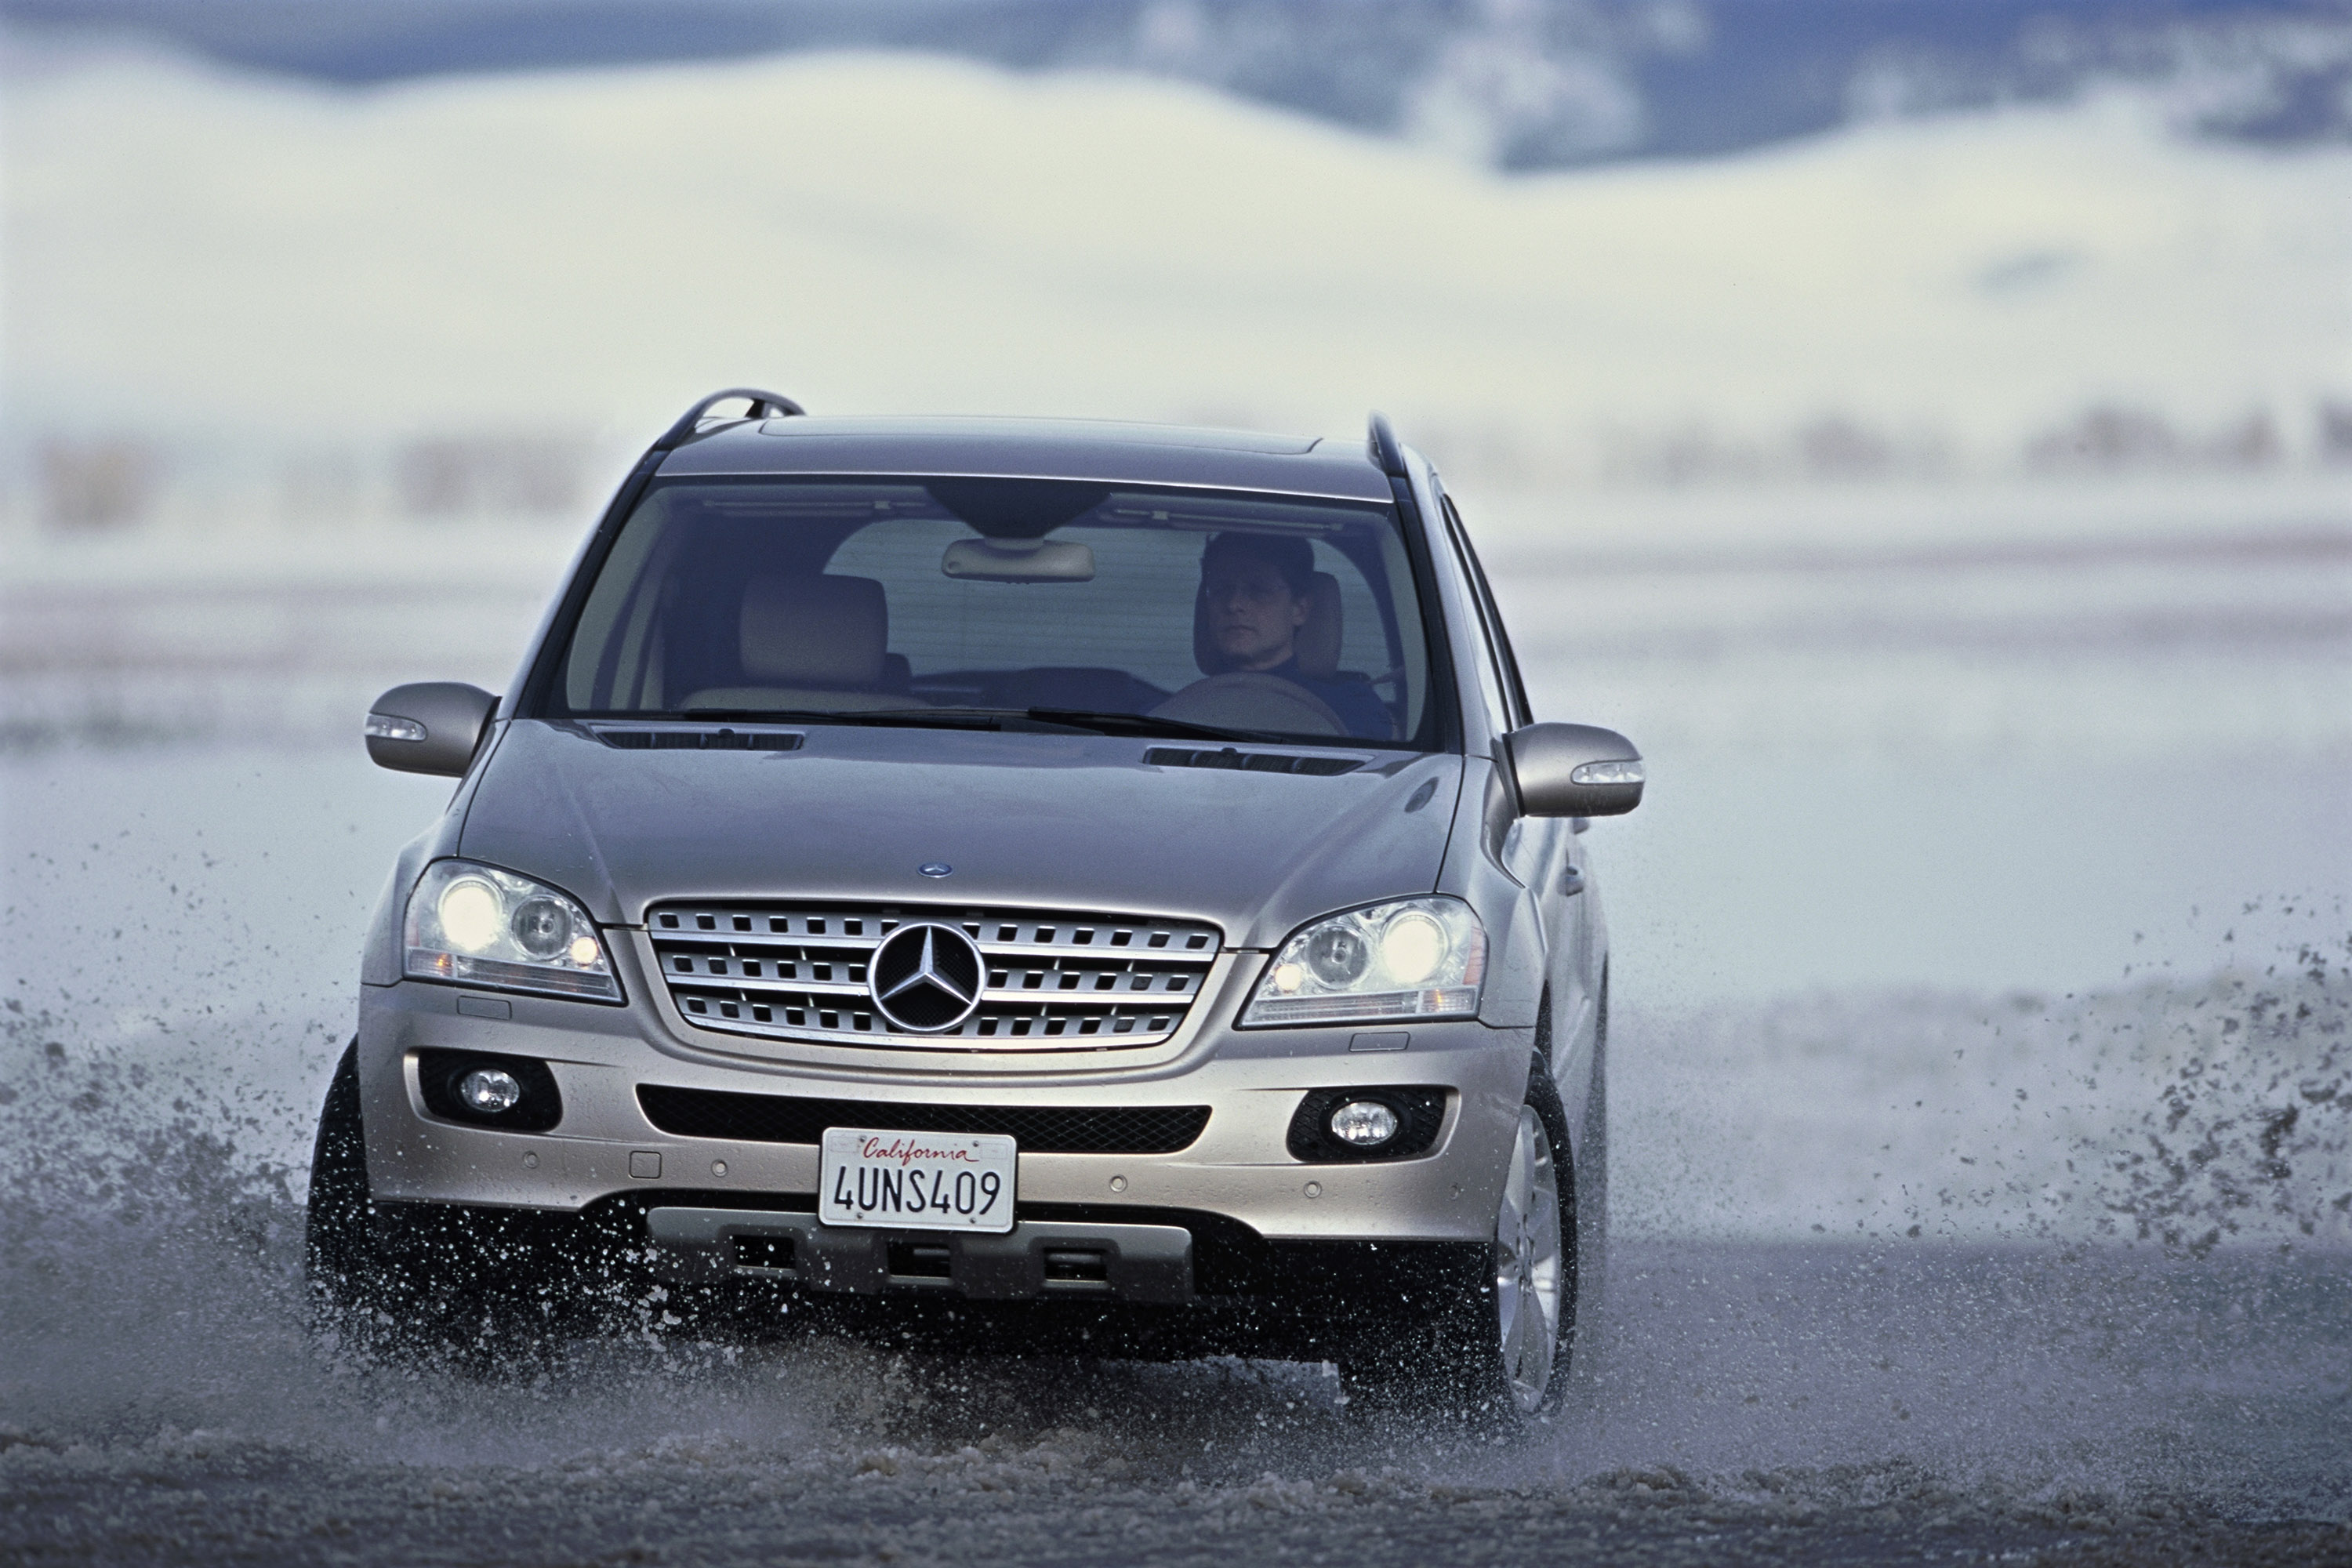 2006 mercedes benz ml500 hd pictures. Black Bedroom Furniture Sets. Home Design Ideas